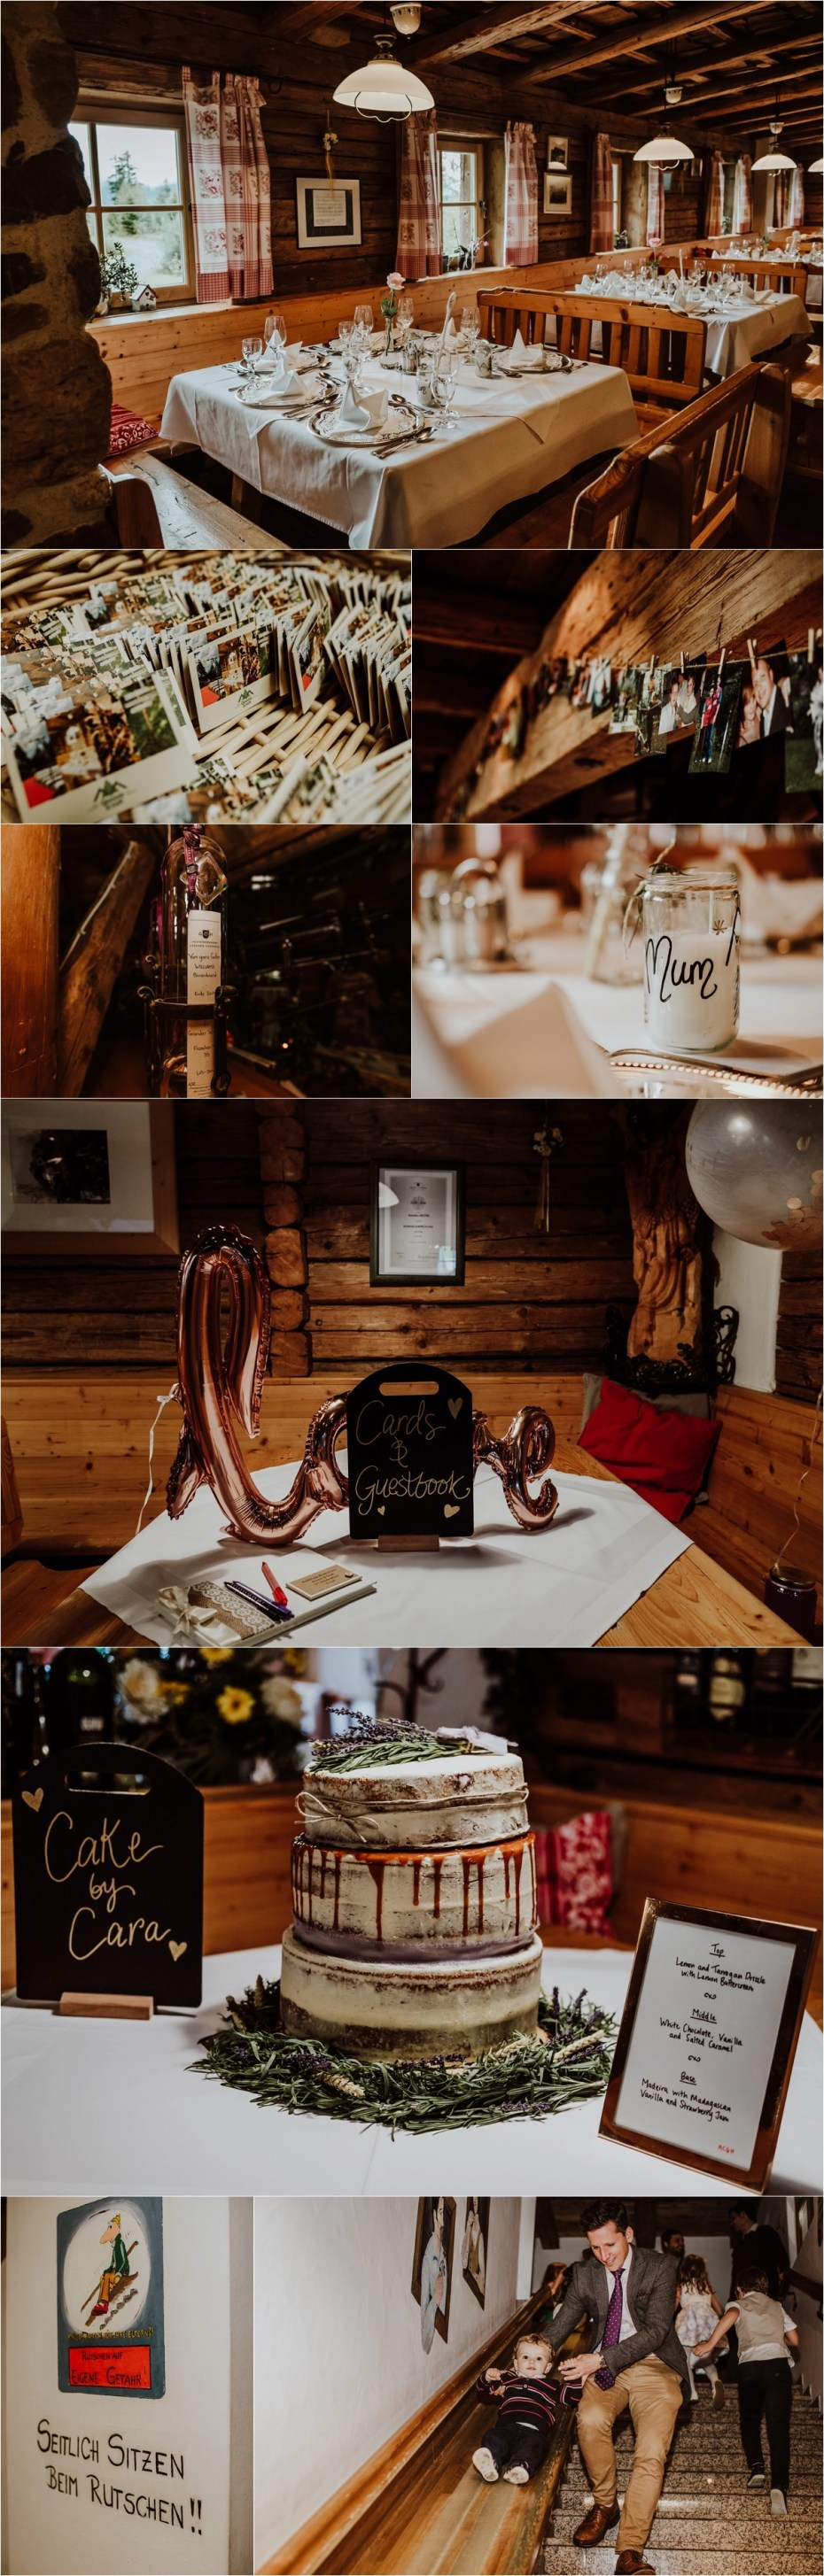 A wedding reception at Berggasthaus Grander Schupf in Austria by Wild Connections Photography